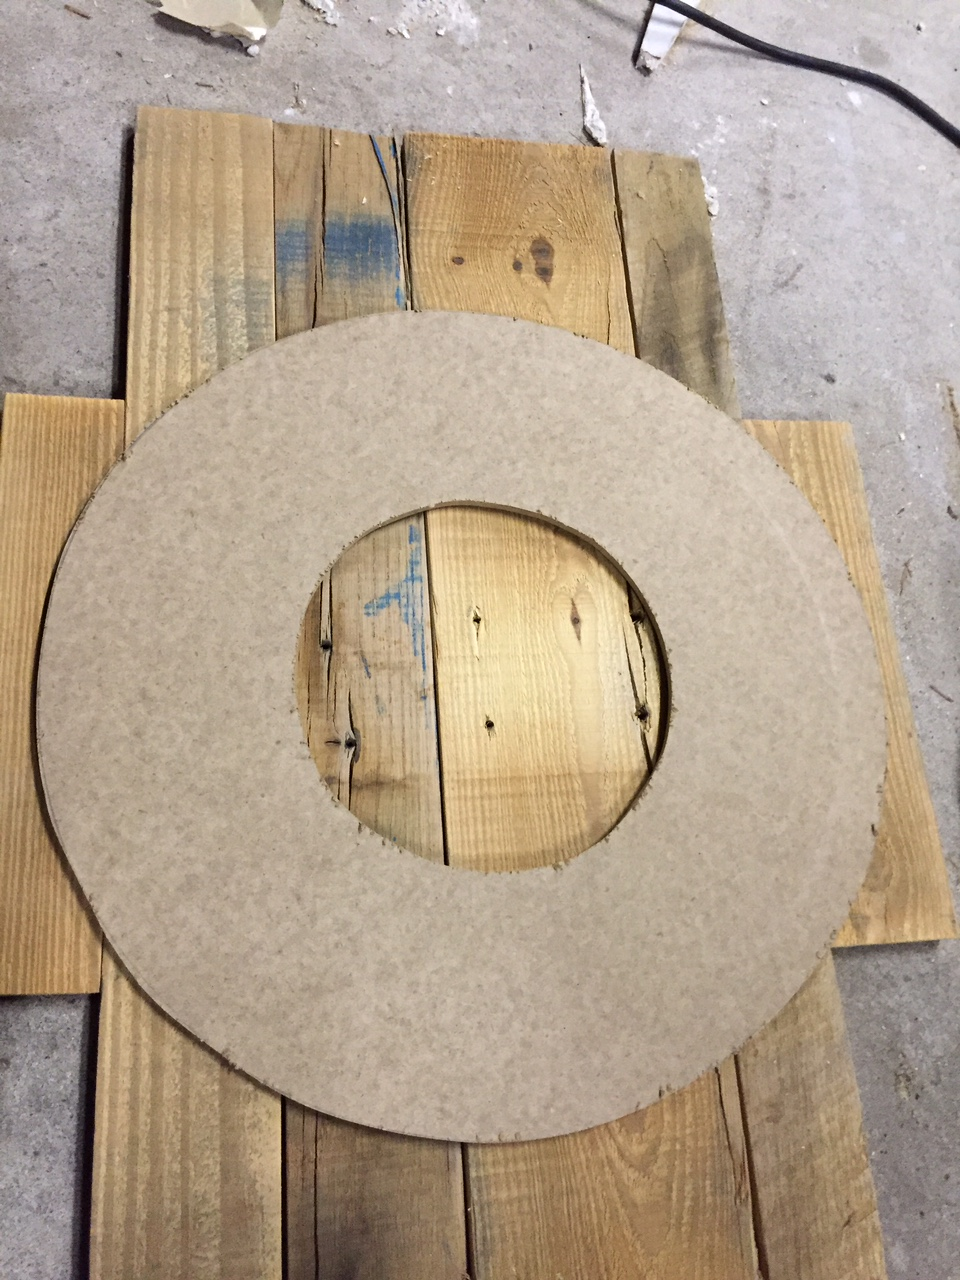 We made a wreath out of pallet wood. Come check out how we made it!